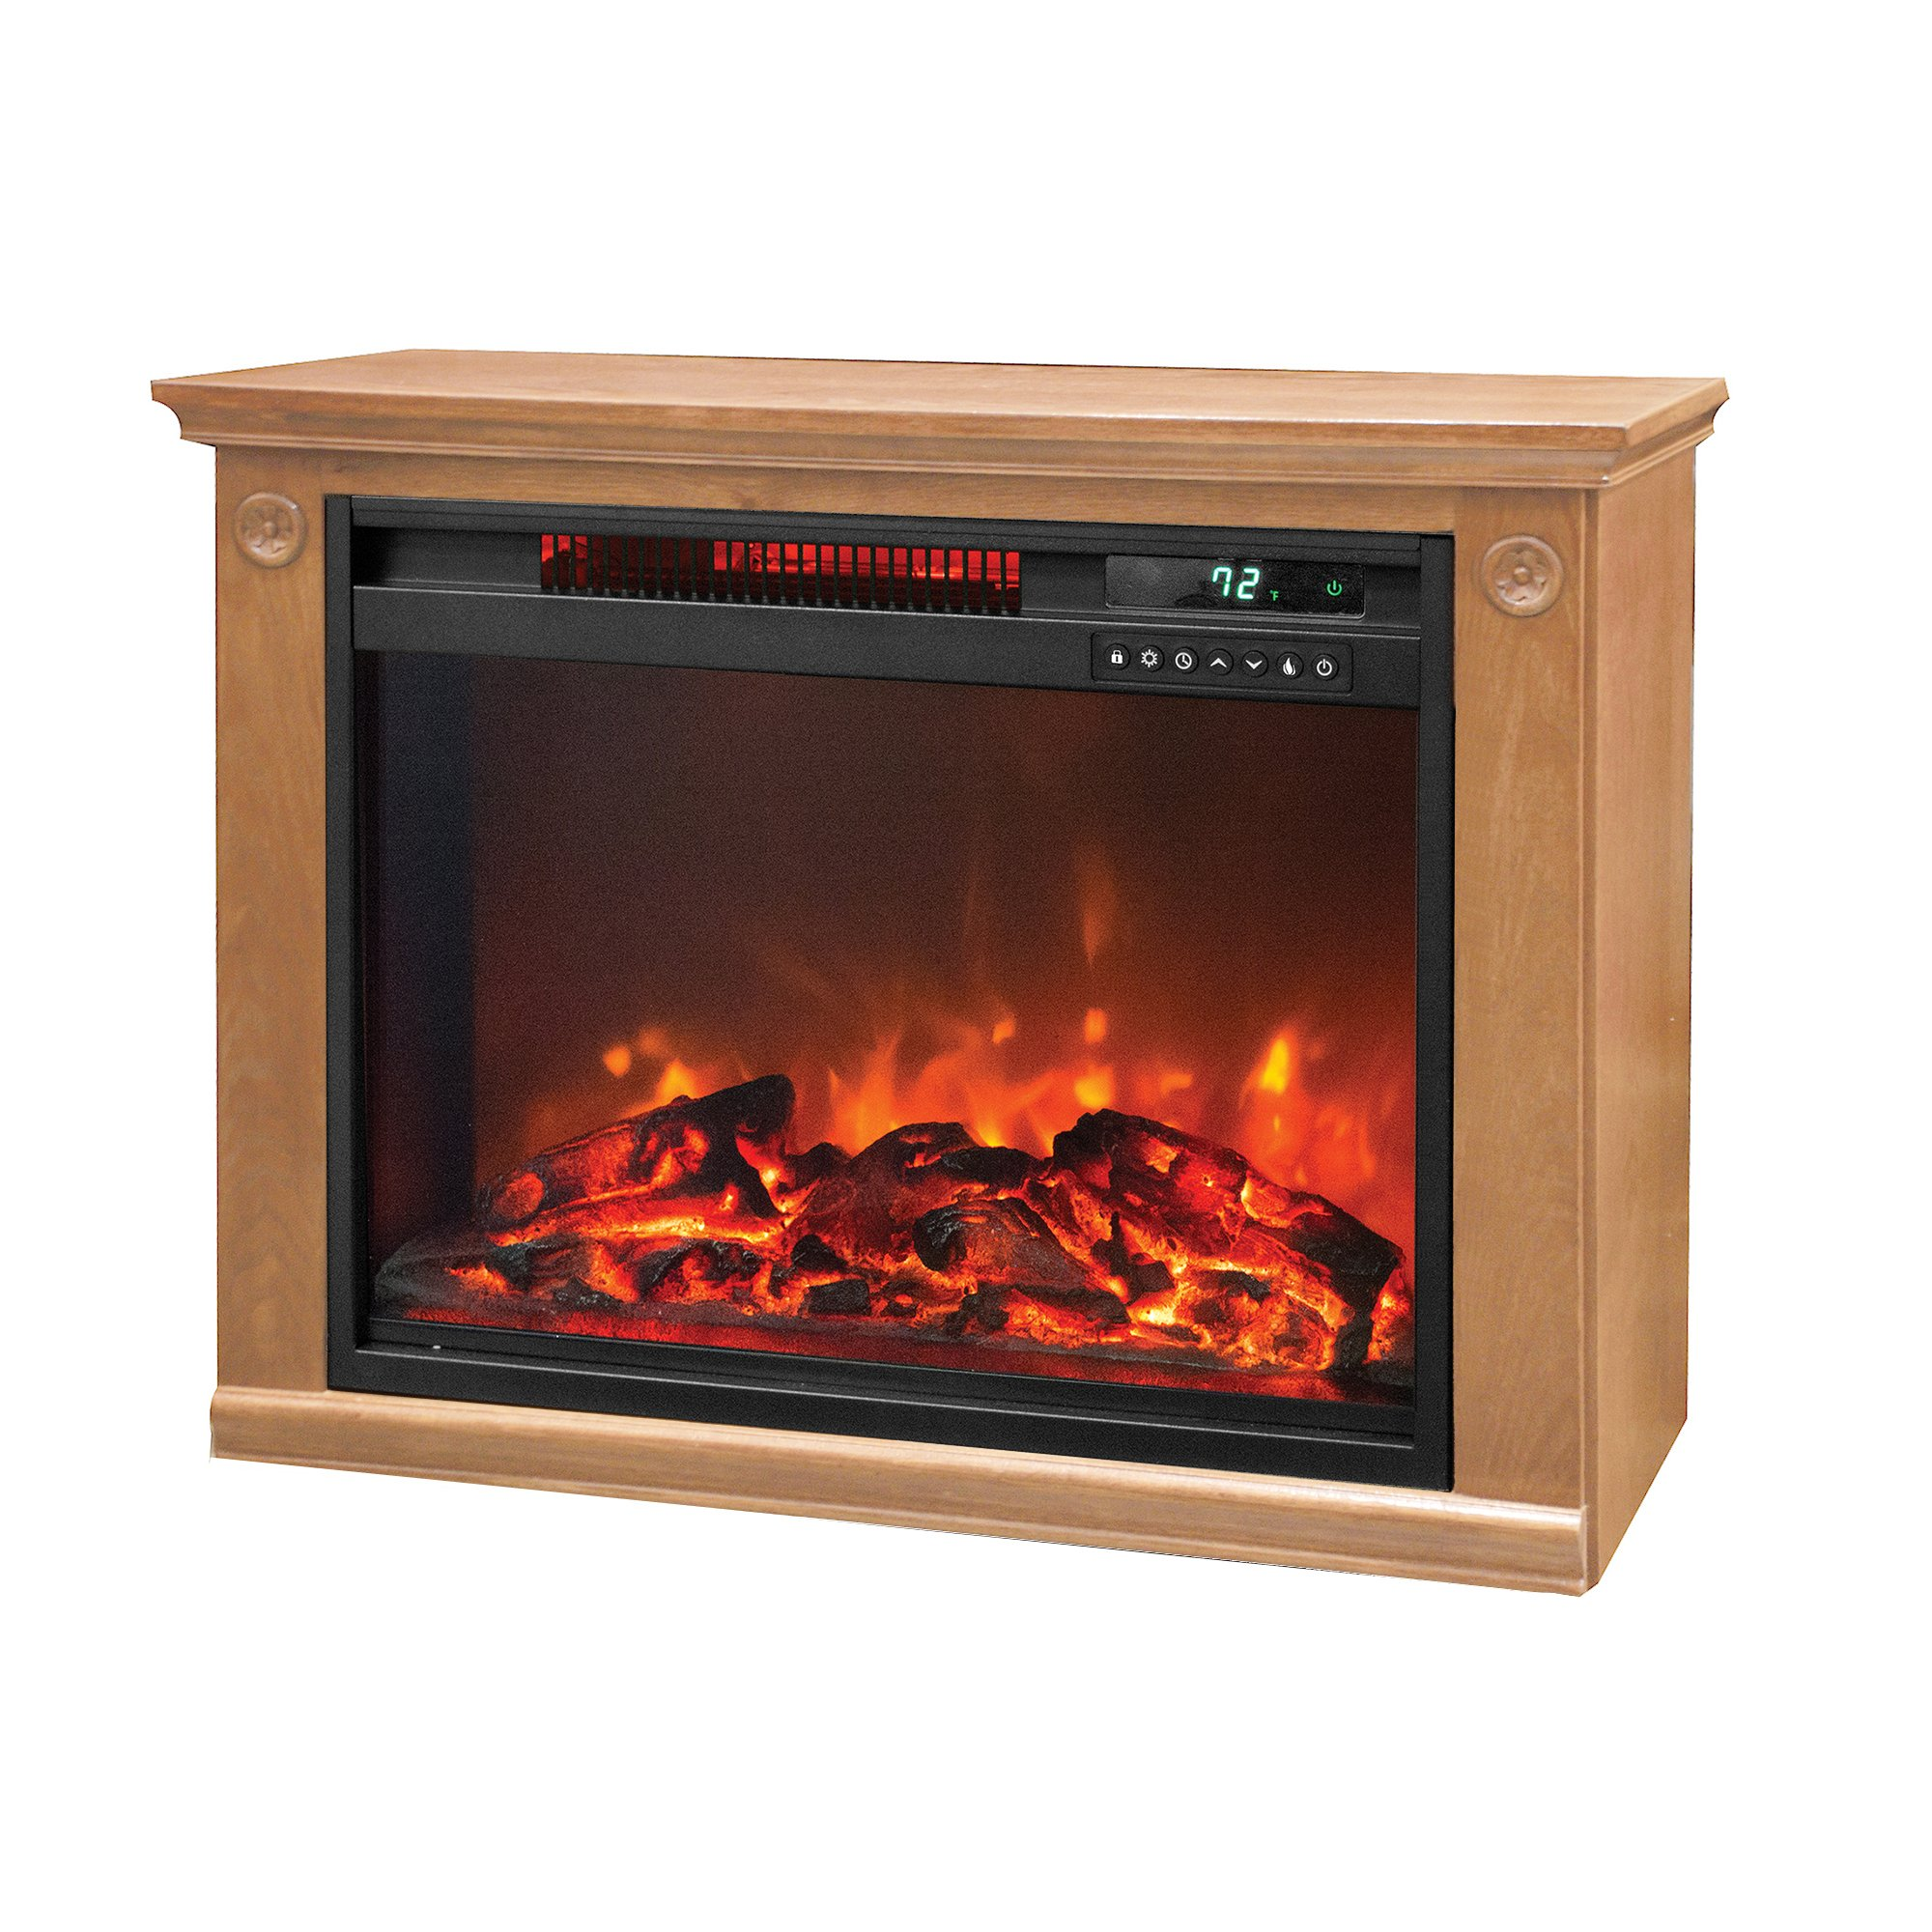 Enjoy the warmth and ambiance a fireplace adds to your living room without ever having to light a fire. Turn on your Lifesmart Large Room Infrared Fireplace Heater and snuggle up to the fire. Easy to use and nothing to maintain